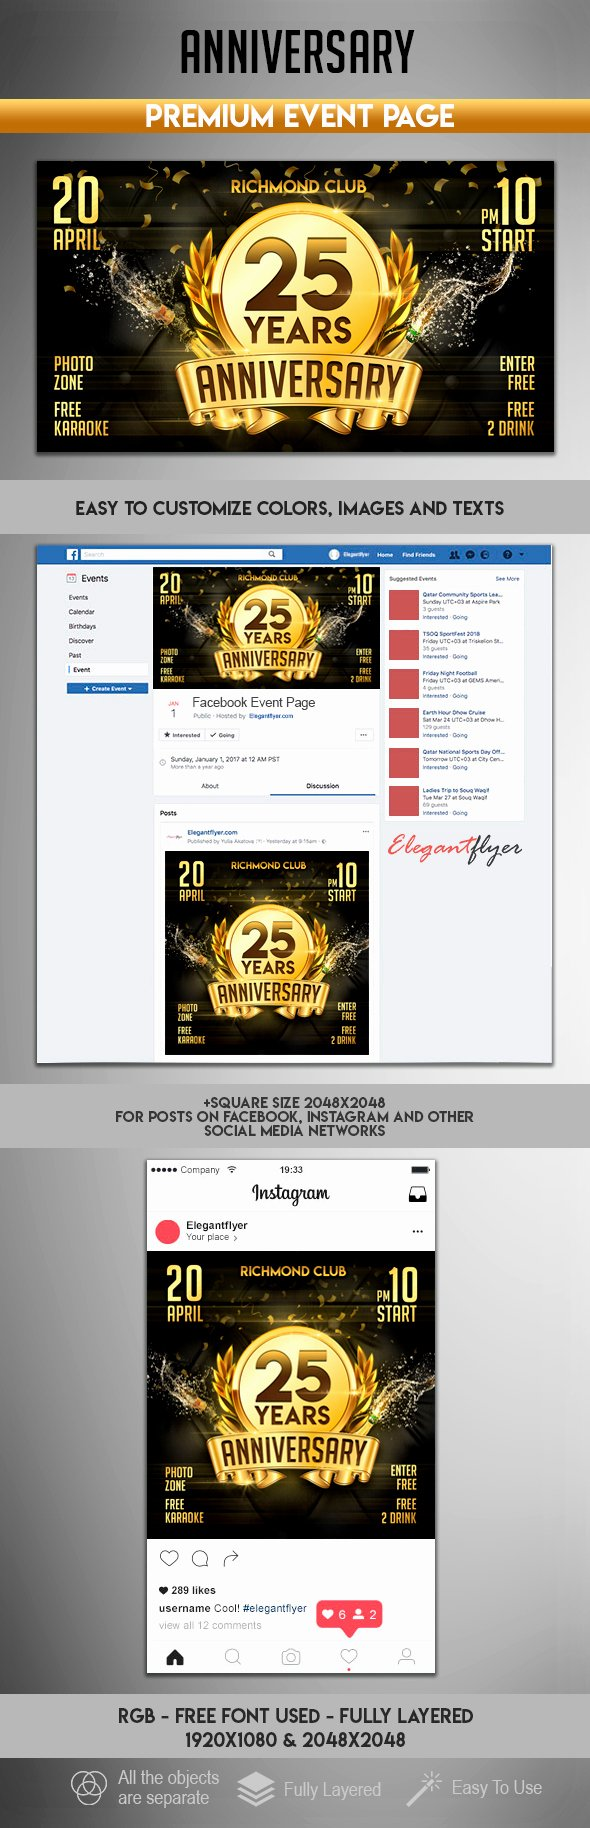 Facebook event Photo Template Beautiful Anniversary – event Instagram Template – by